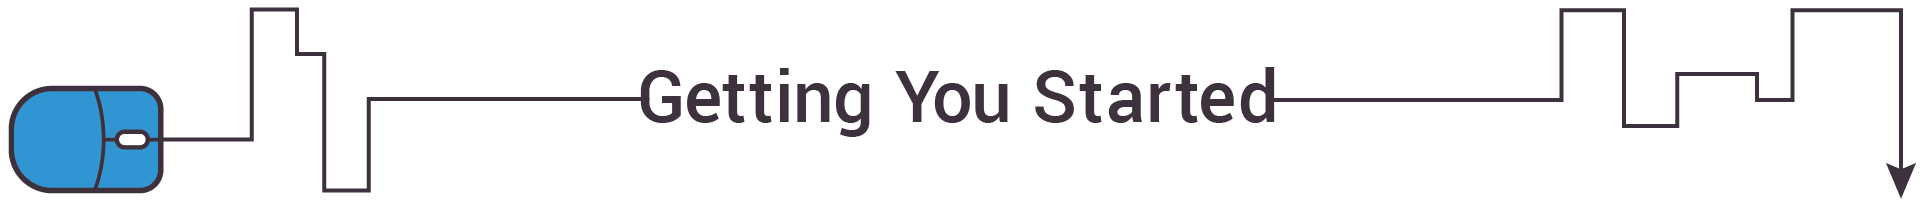 Getting you started